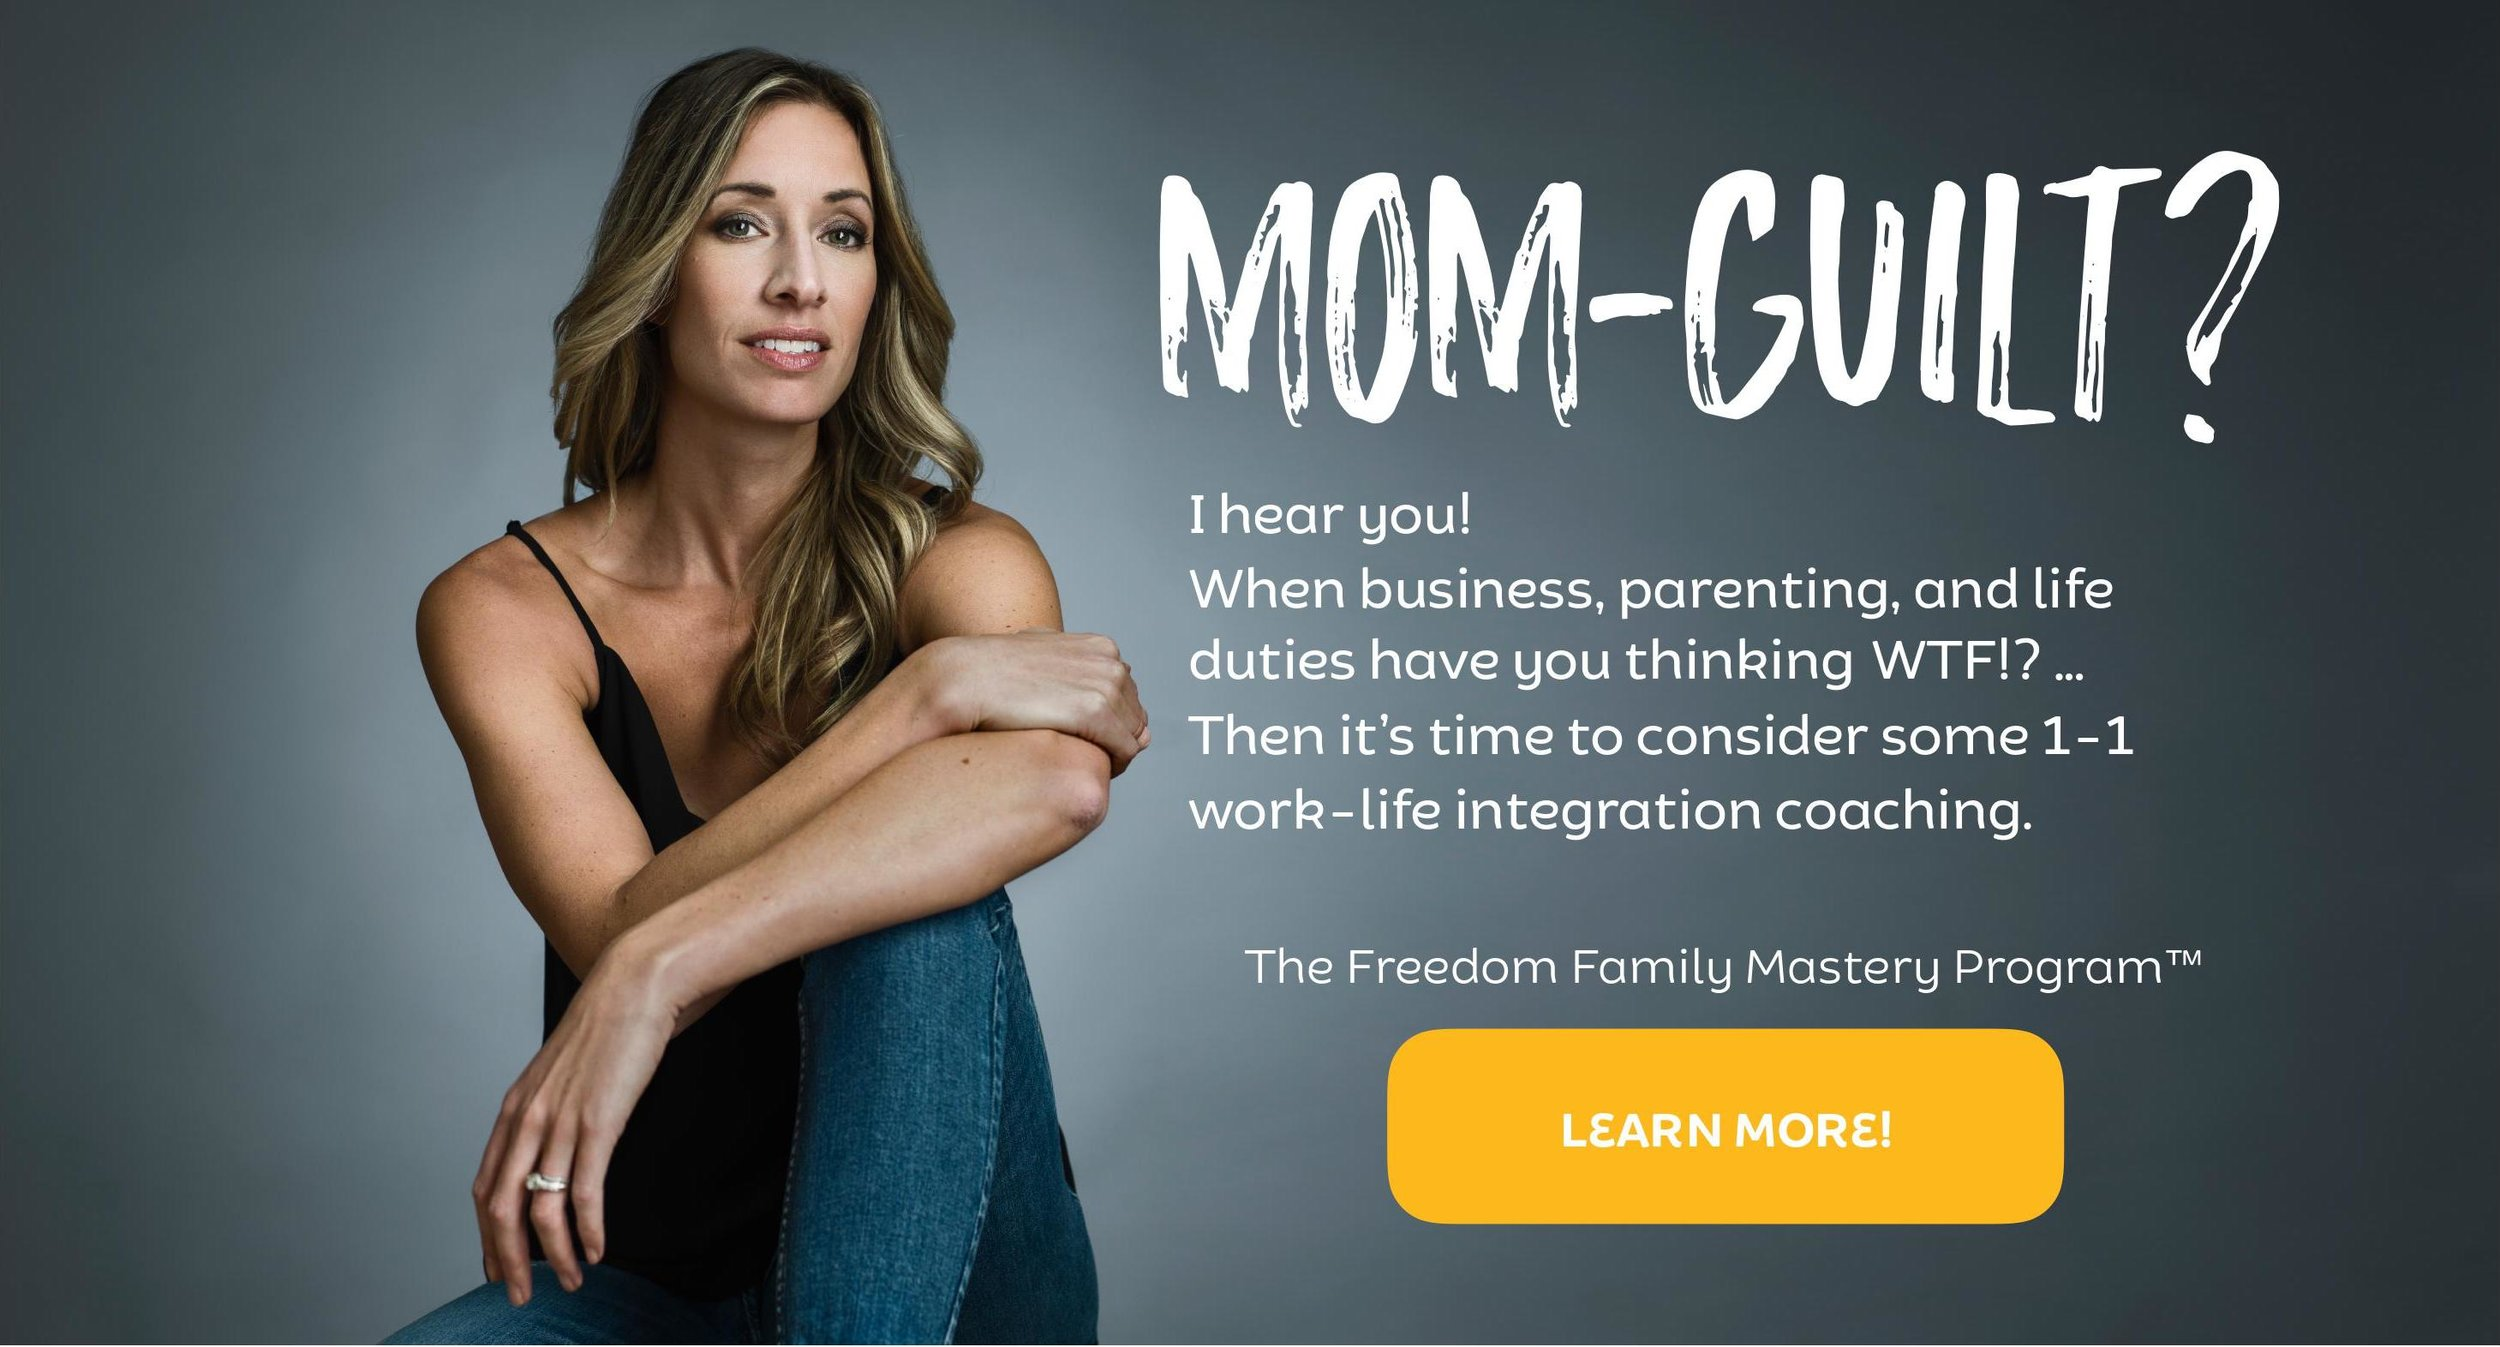 Mom guilt. How to overcome mom guilt